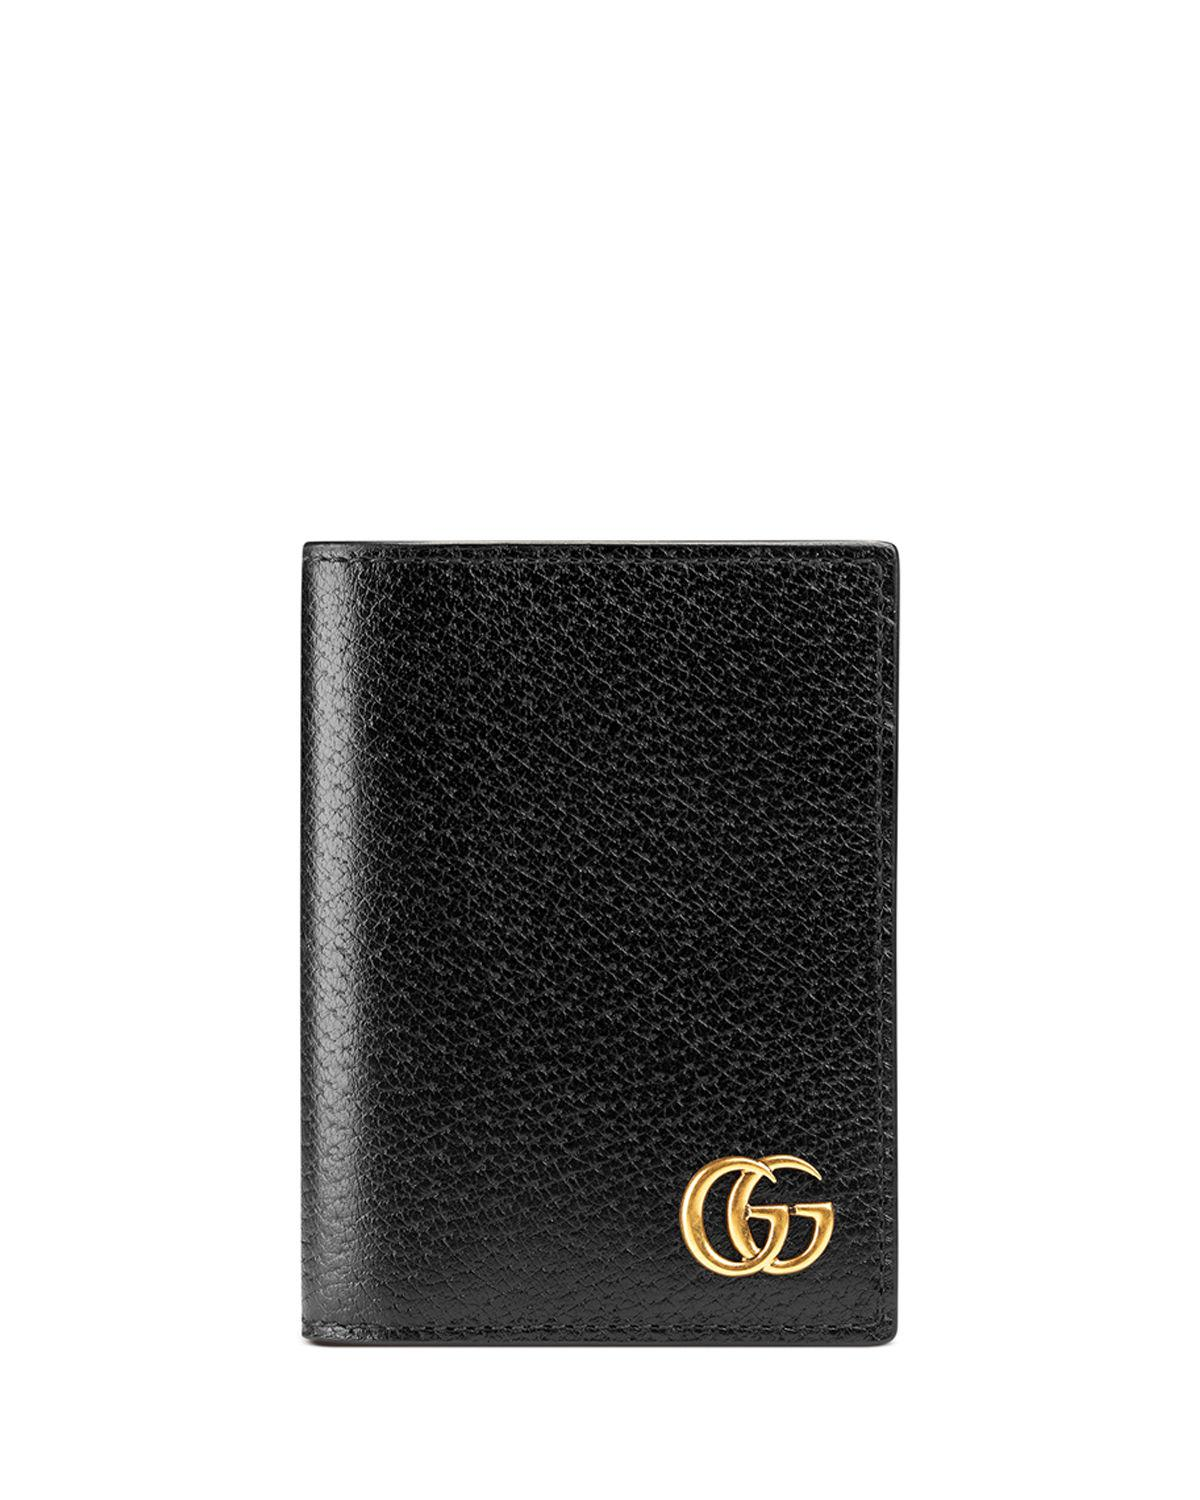 9424695b94a5ec Gucci GG Marmont Leather Fold-over Card Case in Brown for Men - Lyst